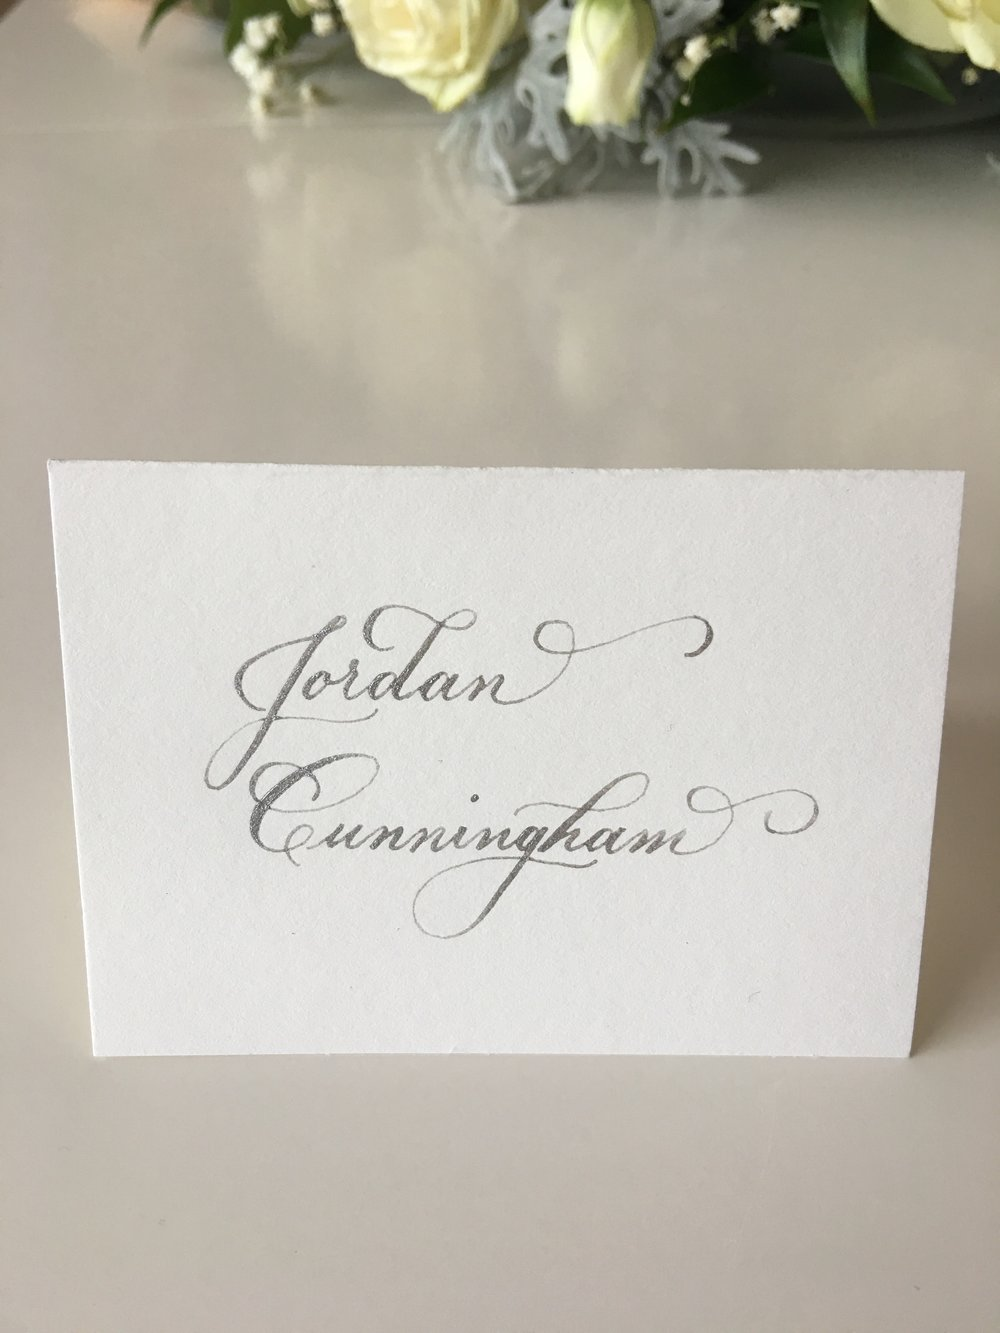 Name spanning two lines on place card.